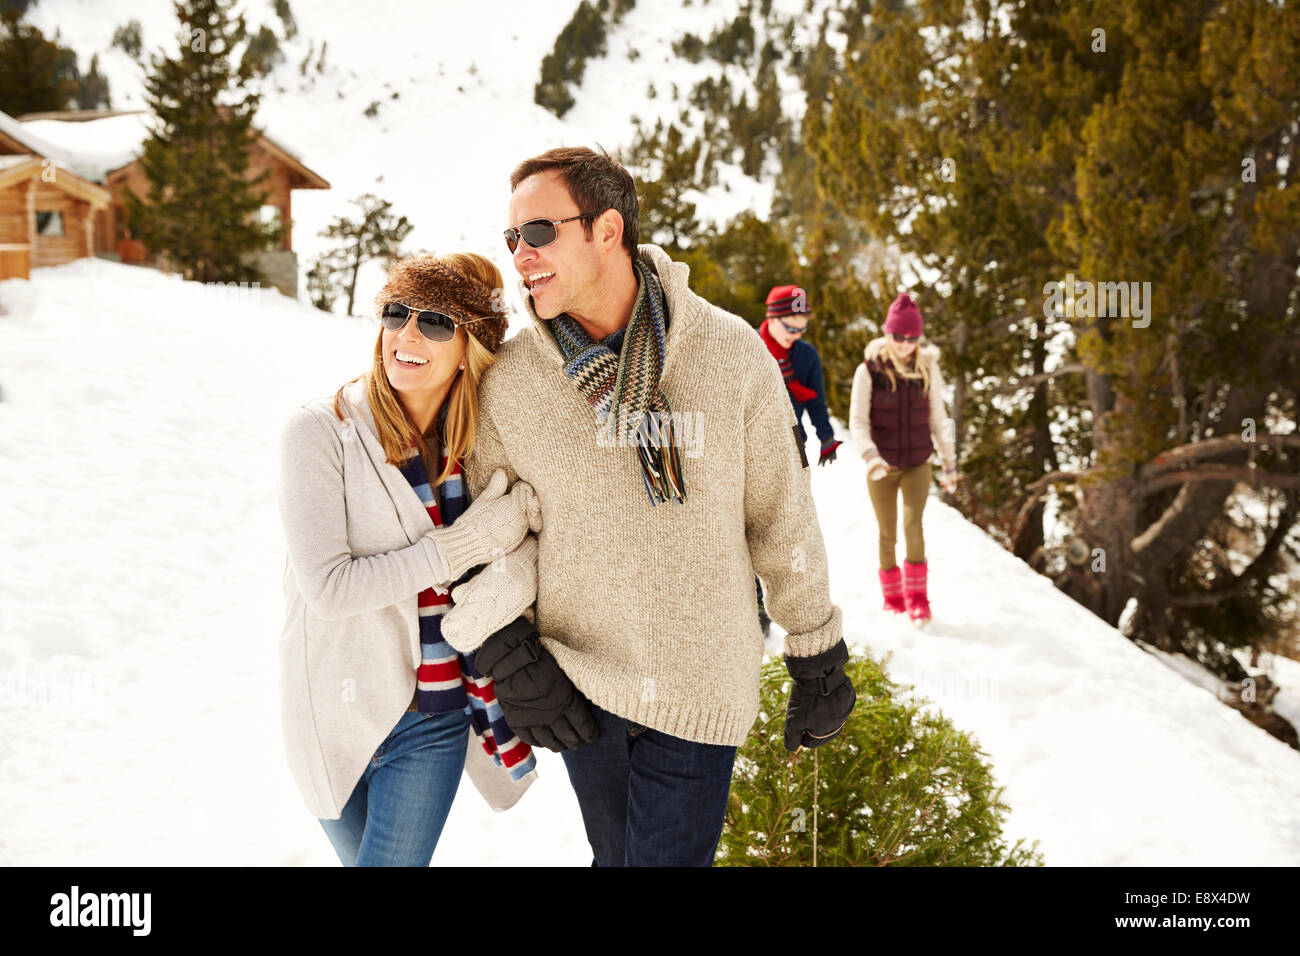 Couple walking through snow together - Stock Image